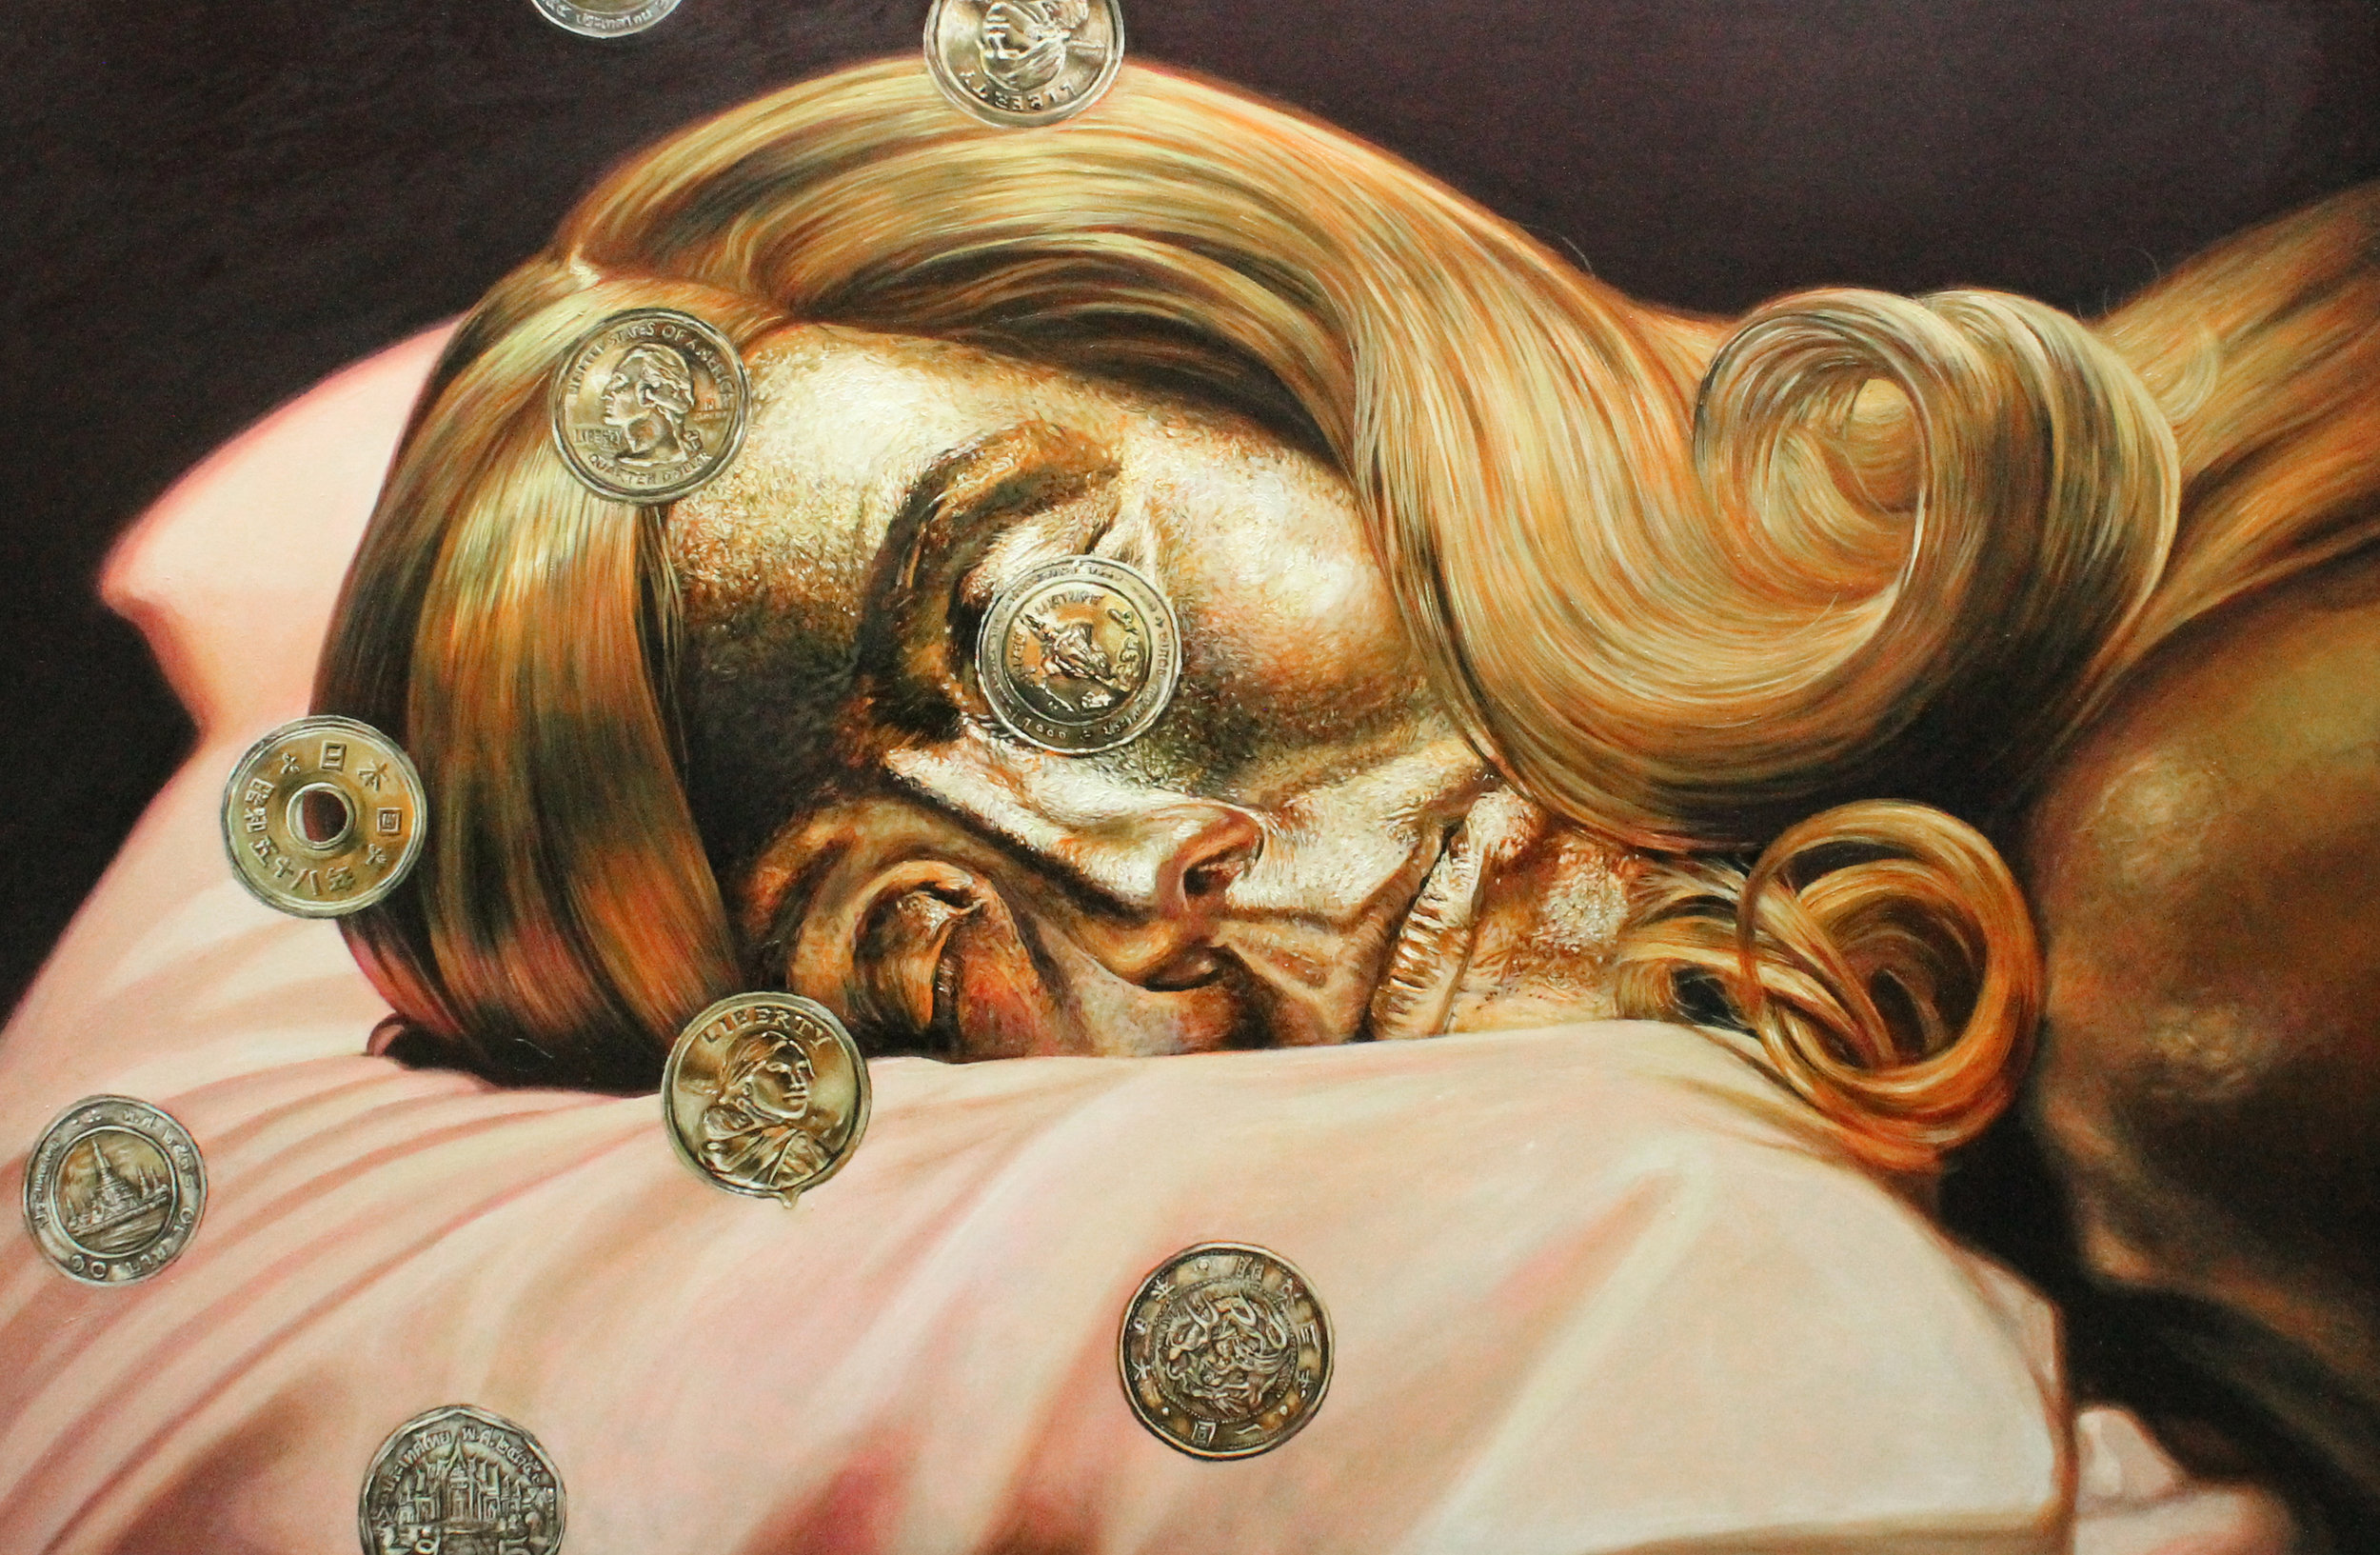 Title: Golden Dream    Year: 2018    Size: 100 x 150 cm    Technique: Oil on canvas